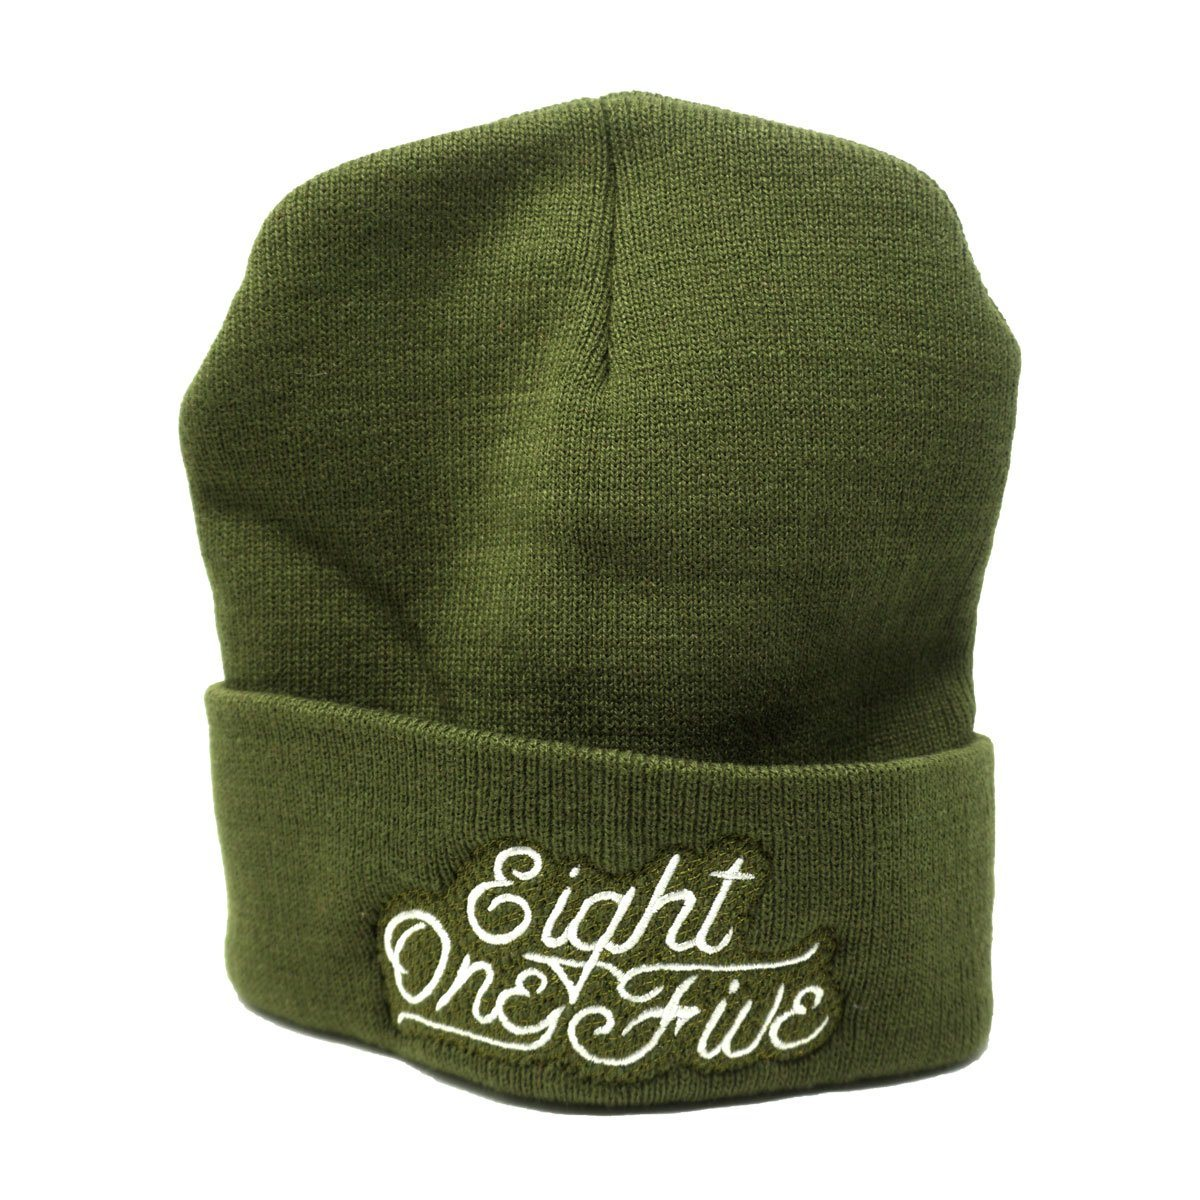 Eight One Five Script Beanie Hat Bayside Olive